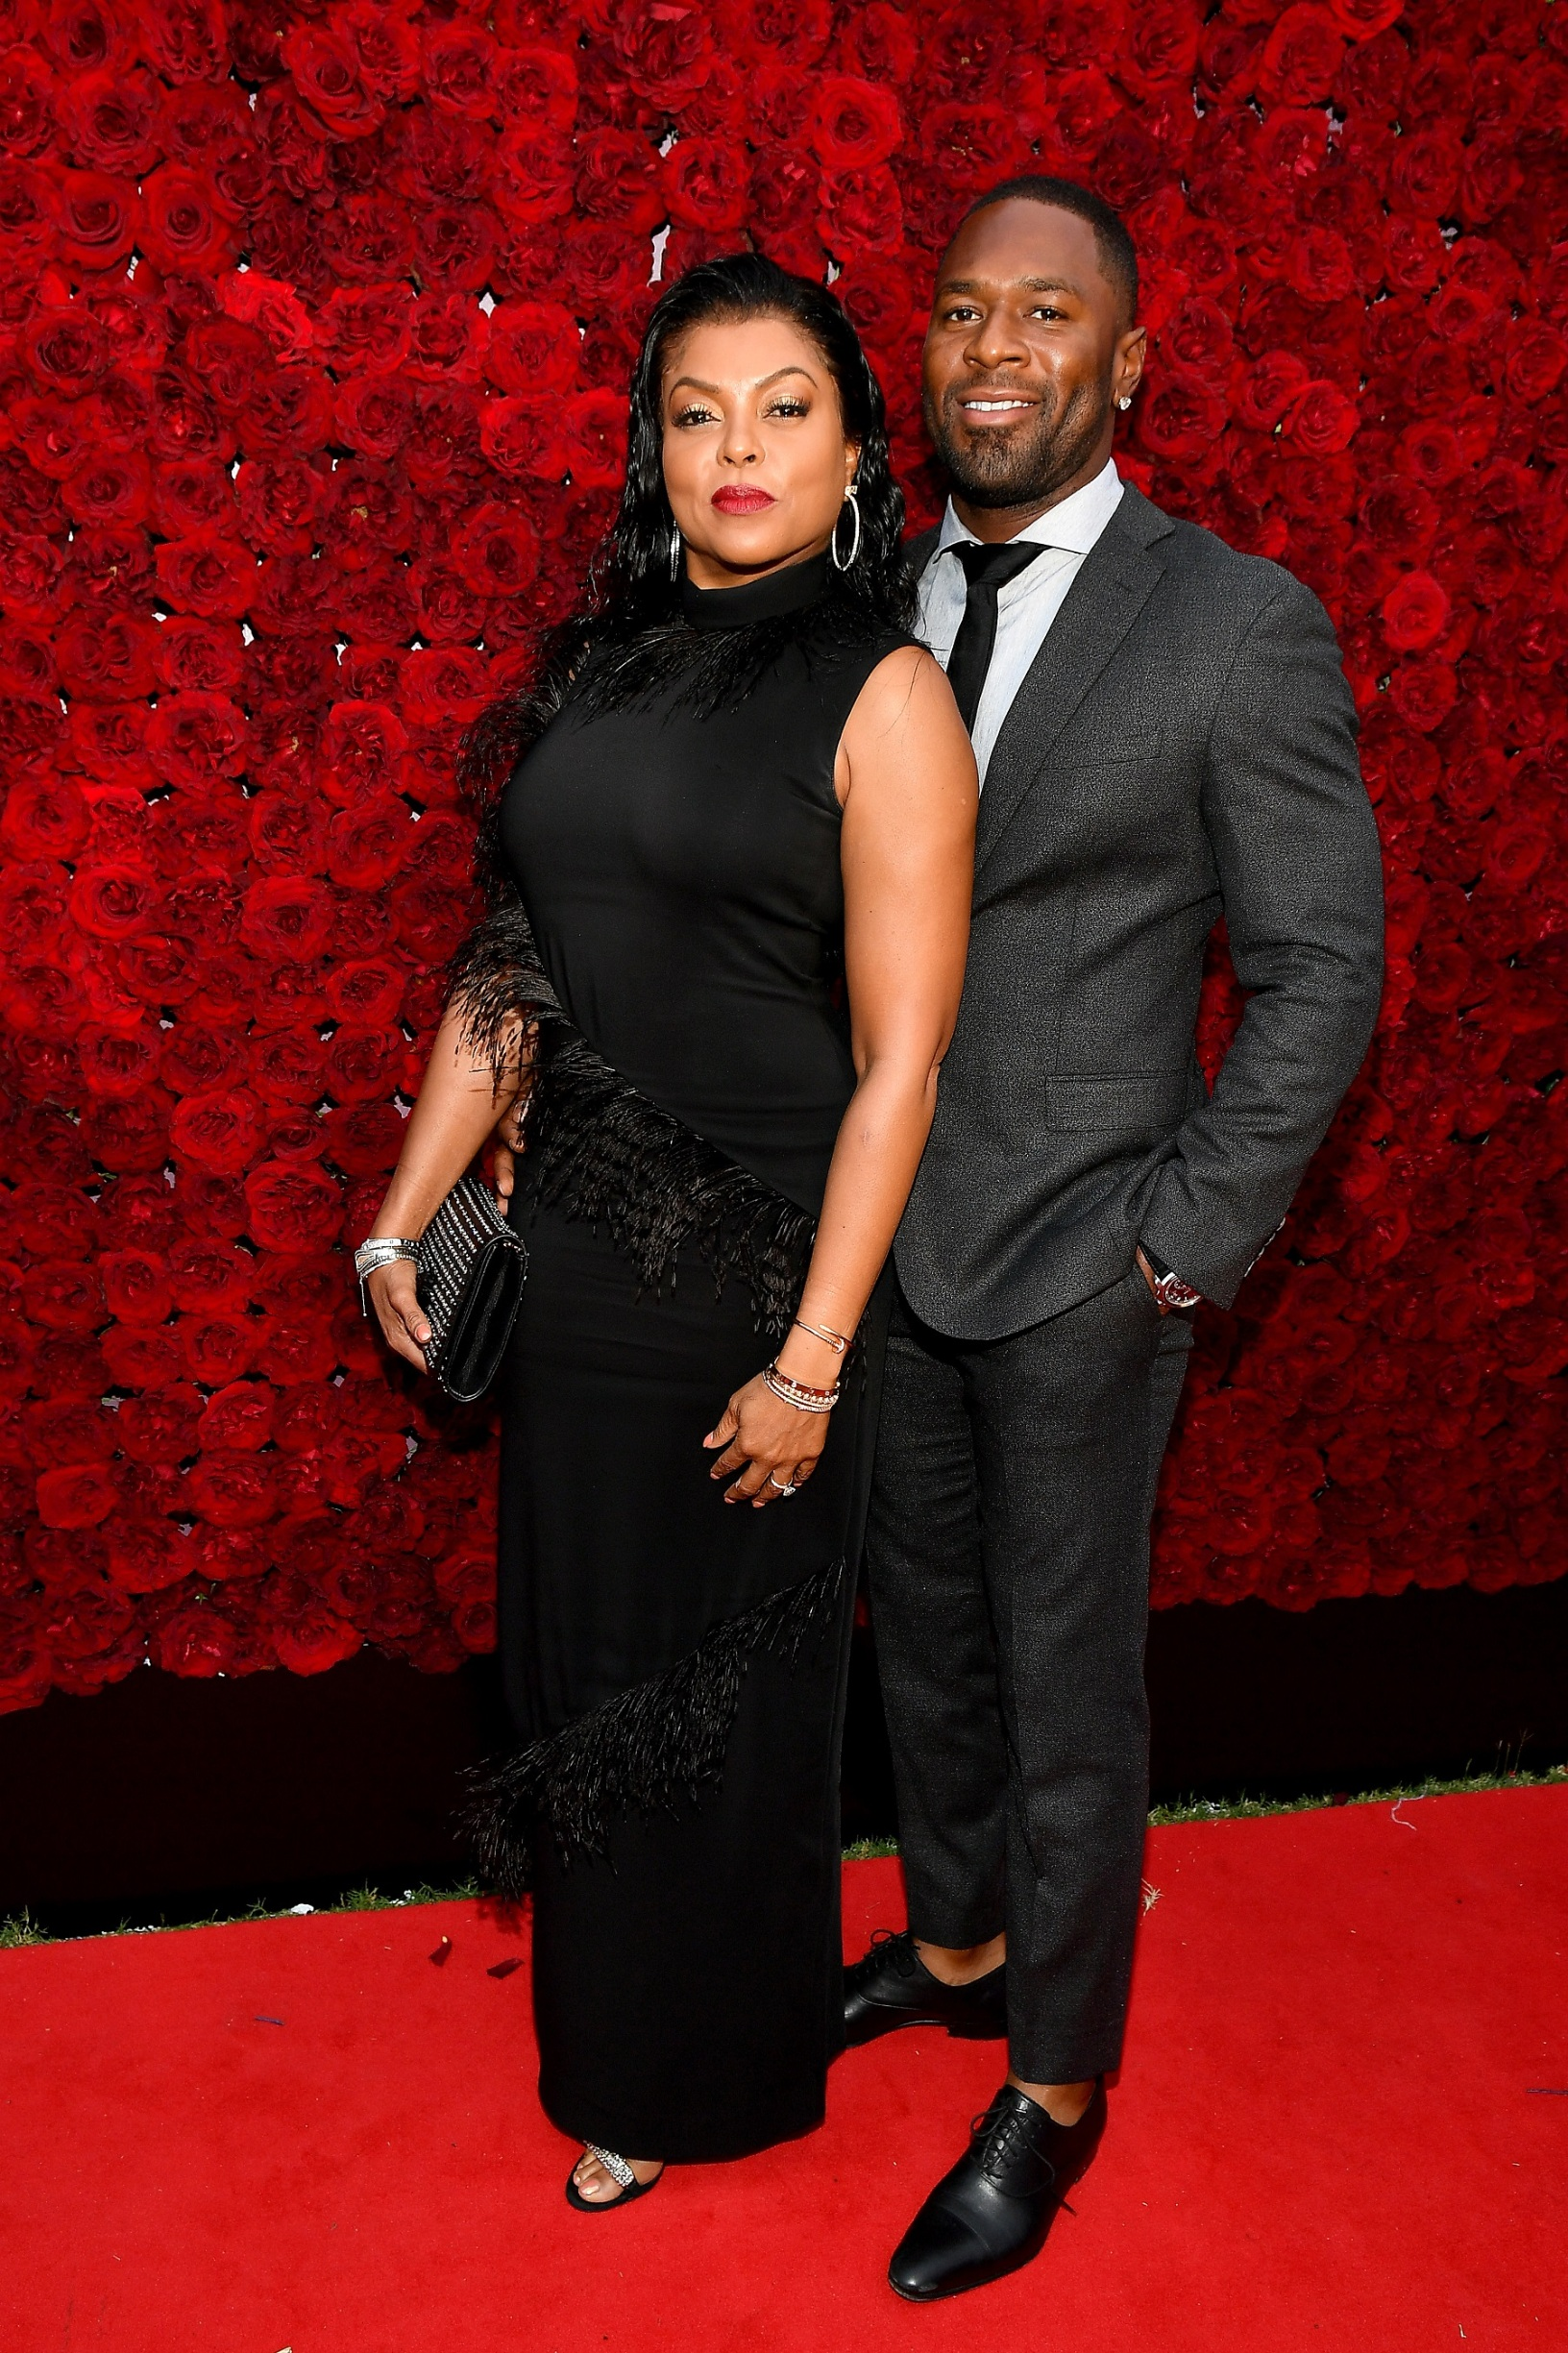 ATLANTA, GEORGIA - OCTOBER 05: Taraji P. Henson and Kelvin Hayden attend Tyler Perry Studios grand opening gala at Tyler Perry Studios on October 05, 2019 in Atlanta, Georgia. (Photo by Paras Griffin/Getty Images for Tyler Perry Studios)